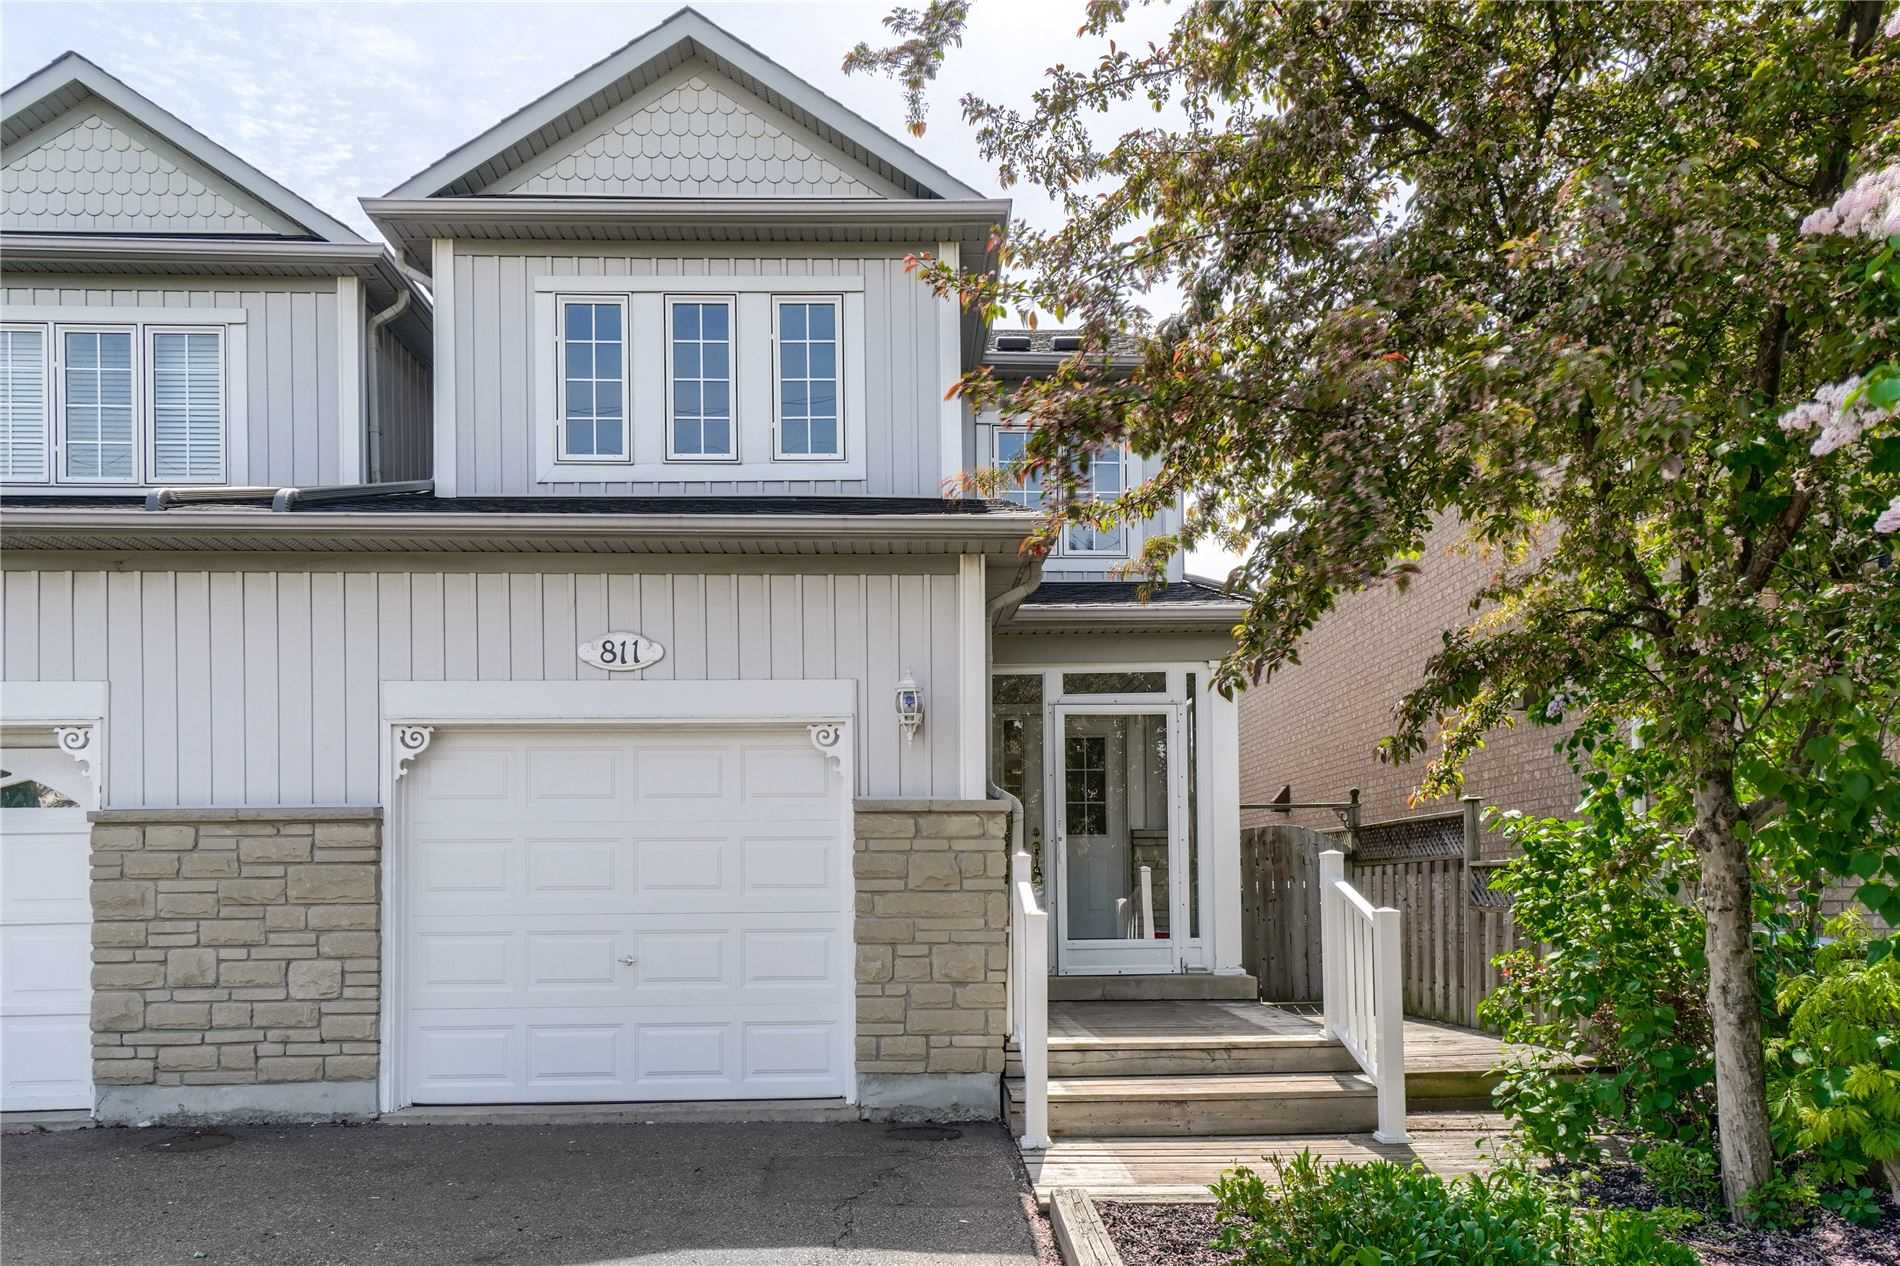 pictures of house for sale MLS: W5242724 located at 811 Avocado Cres, Mississauga L5W1K4